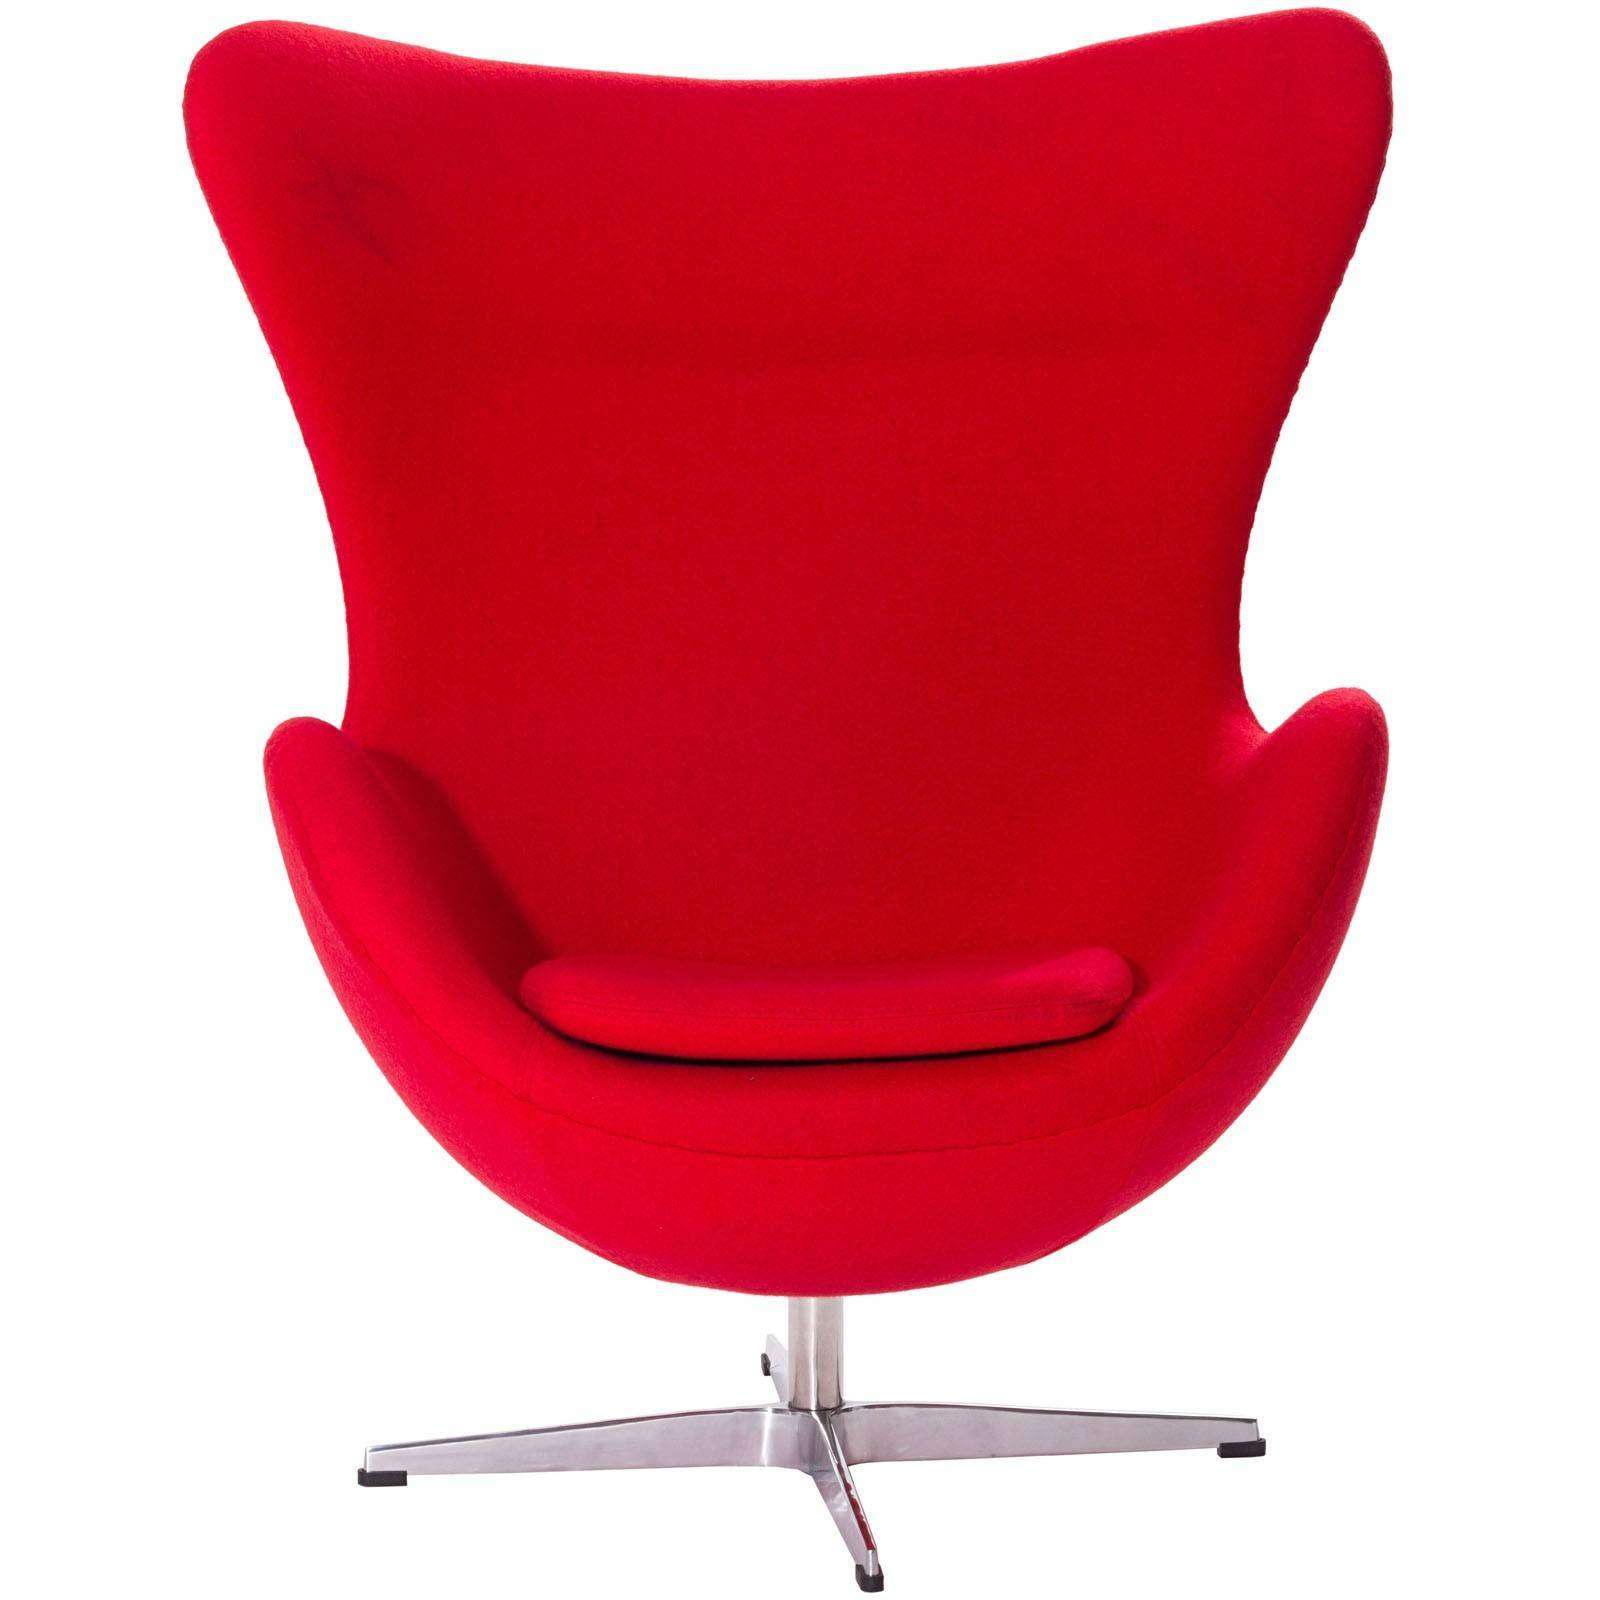 Arne jacobsen egg chair white - Arne Jacobsen Style Egg Chair Wool